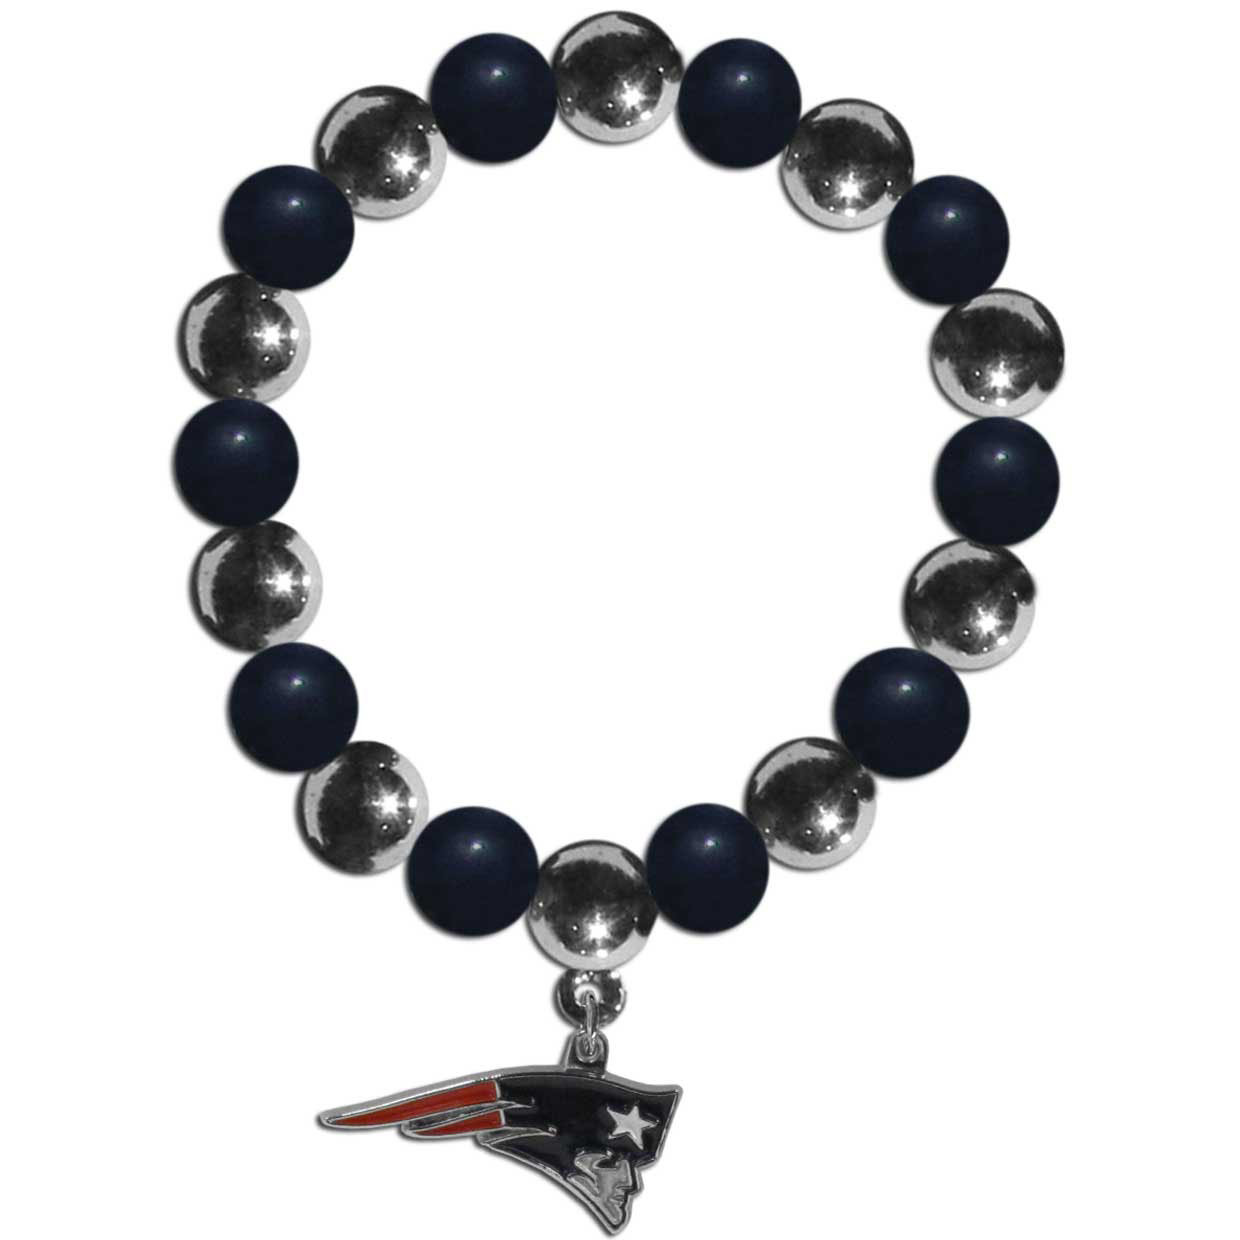 New England Patriots Chrome Bead Bracelet - Flash your New England Patriots spirit with this bright stretch bracelet. This new bracelet features alternating charm & team beads on stretch cord with a nickel-free enameled chrome team charm. This bracelet adds the perfect pop of color to your game day accessories.